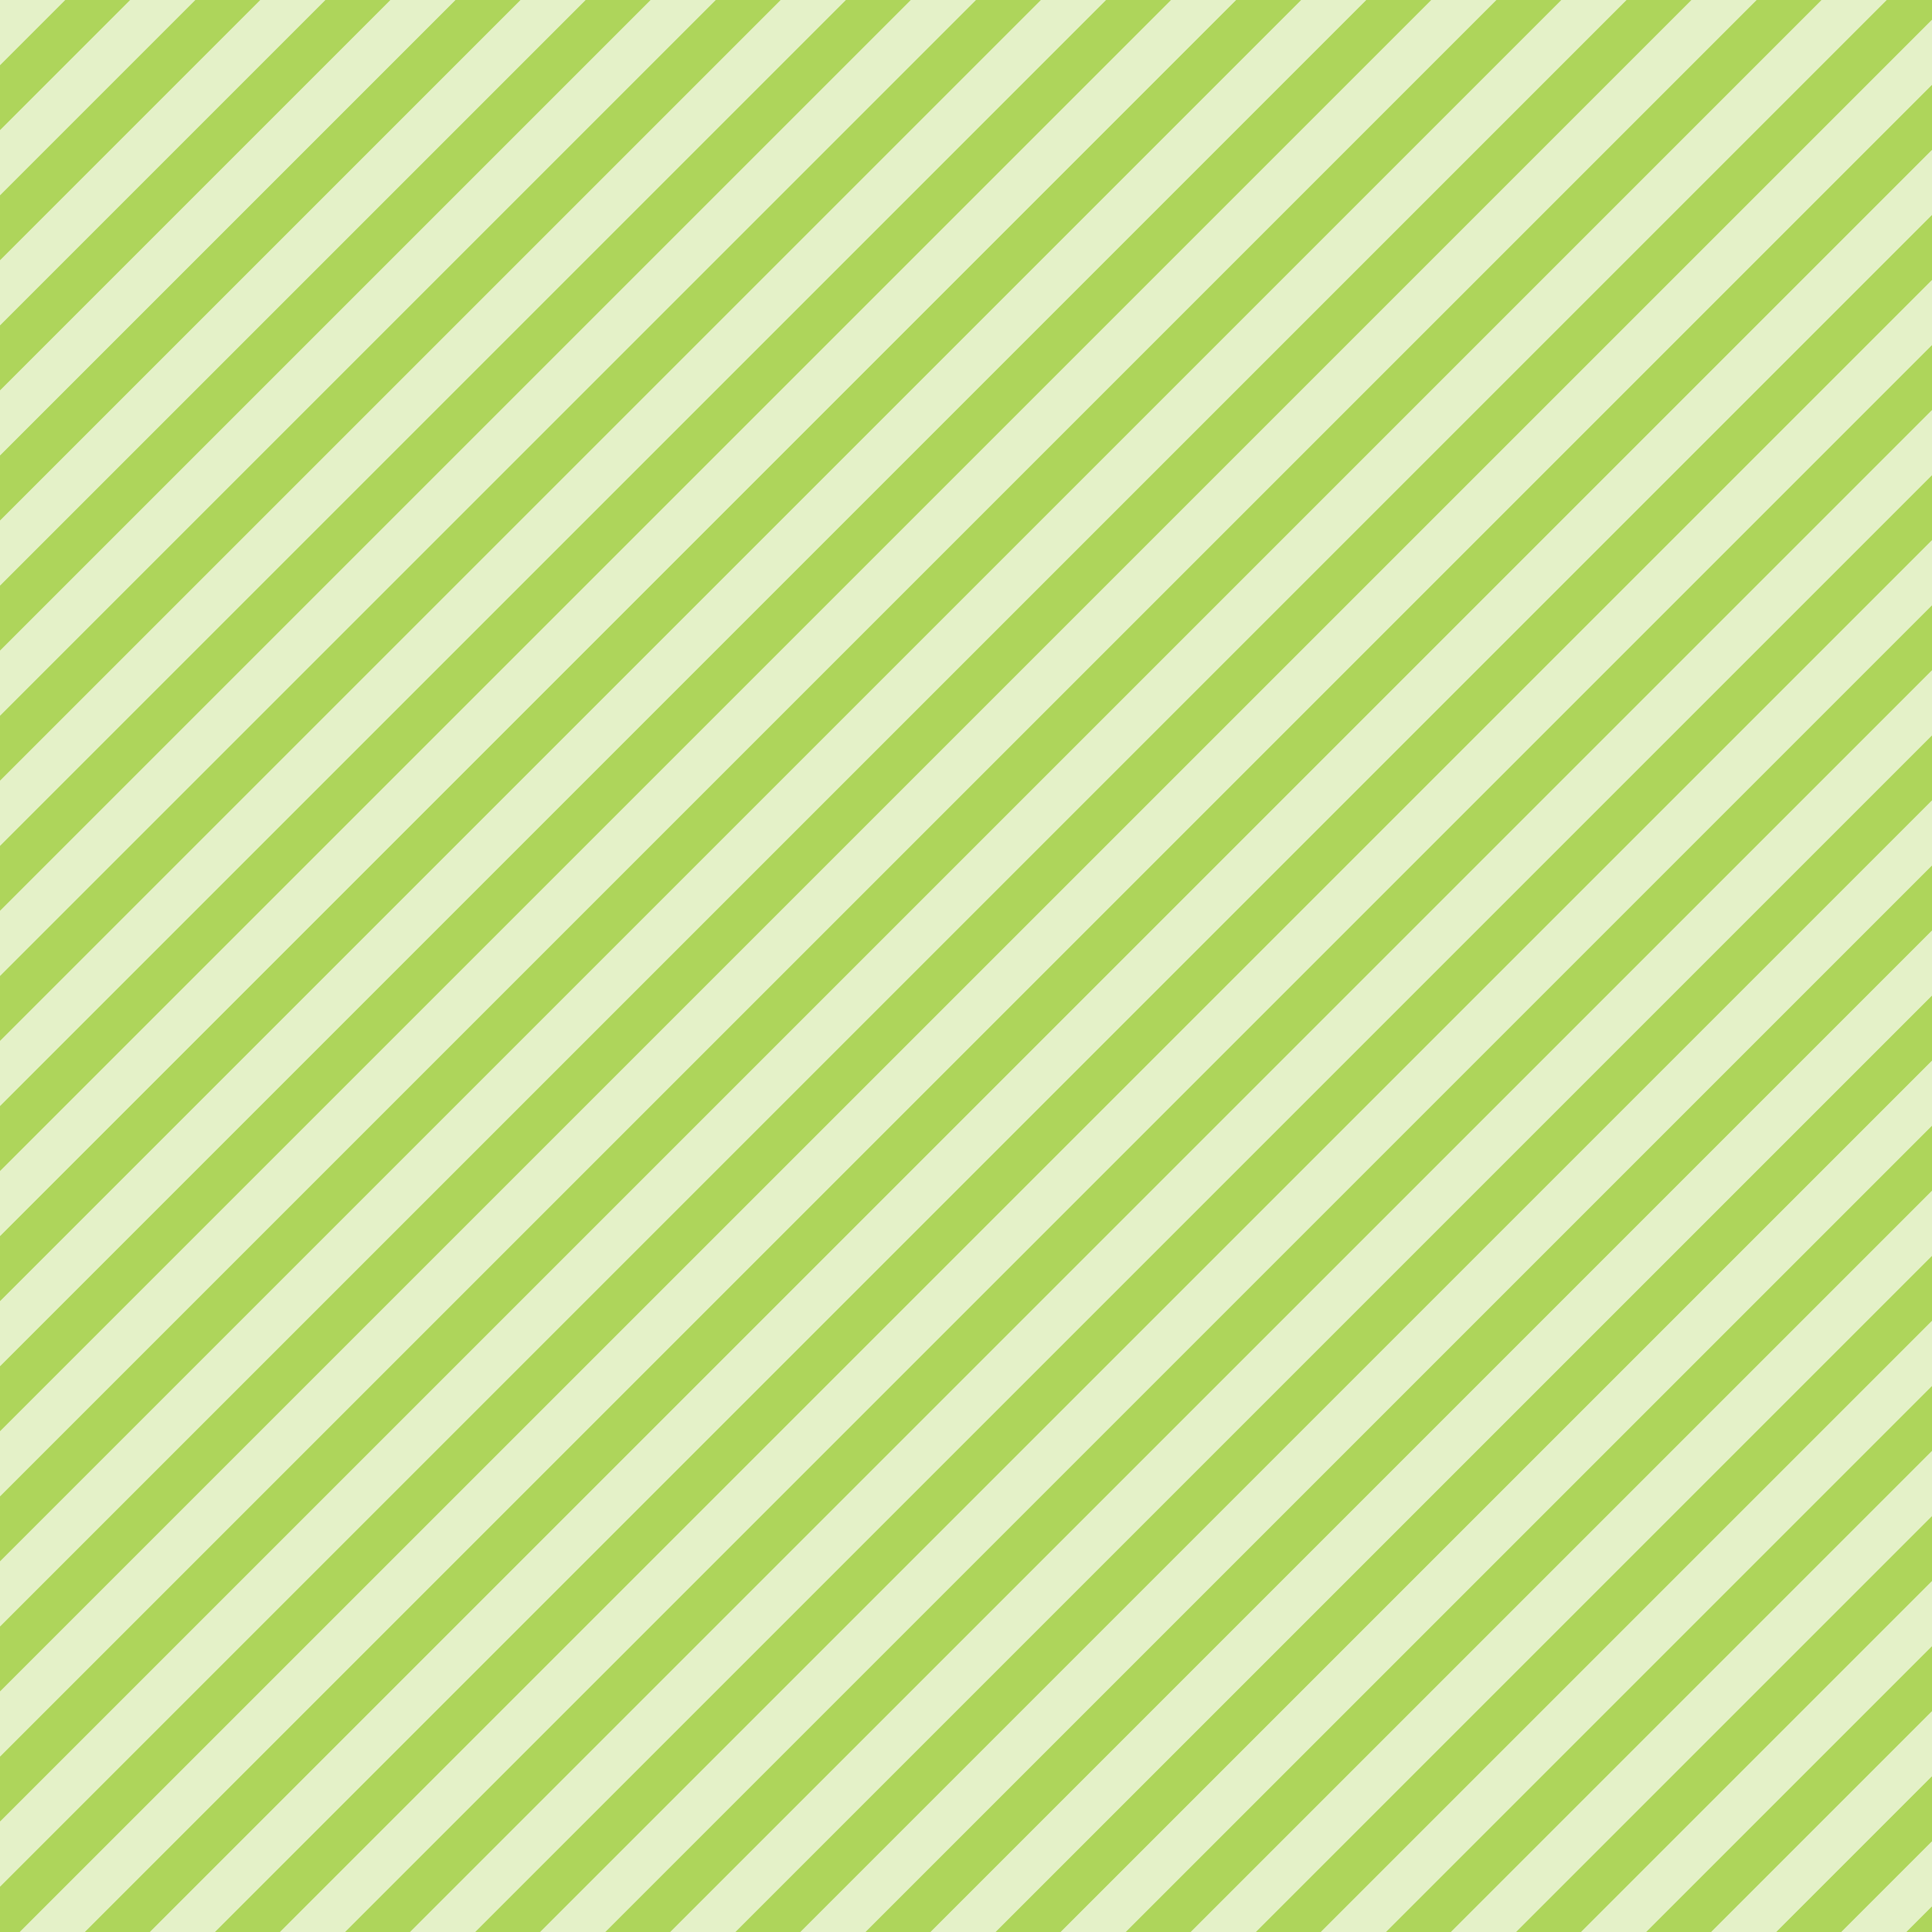 Scrapbooking Paper Green And White Diagonal Stripes Free Image